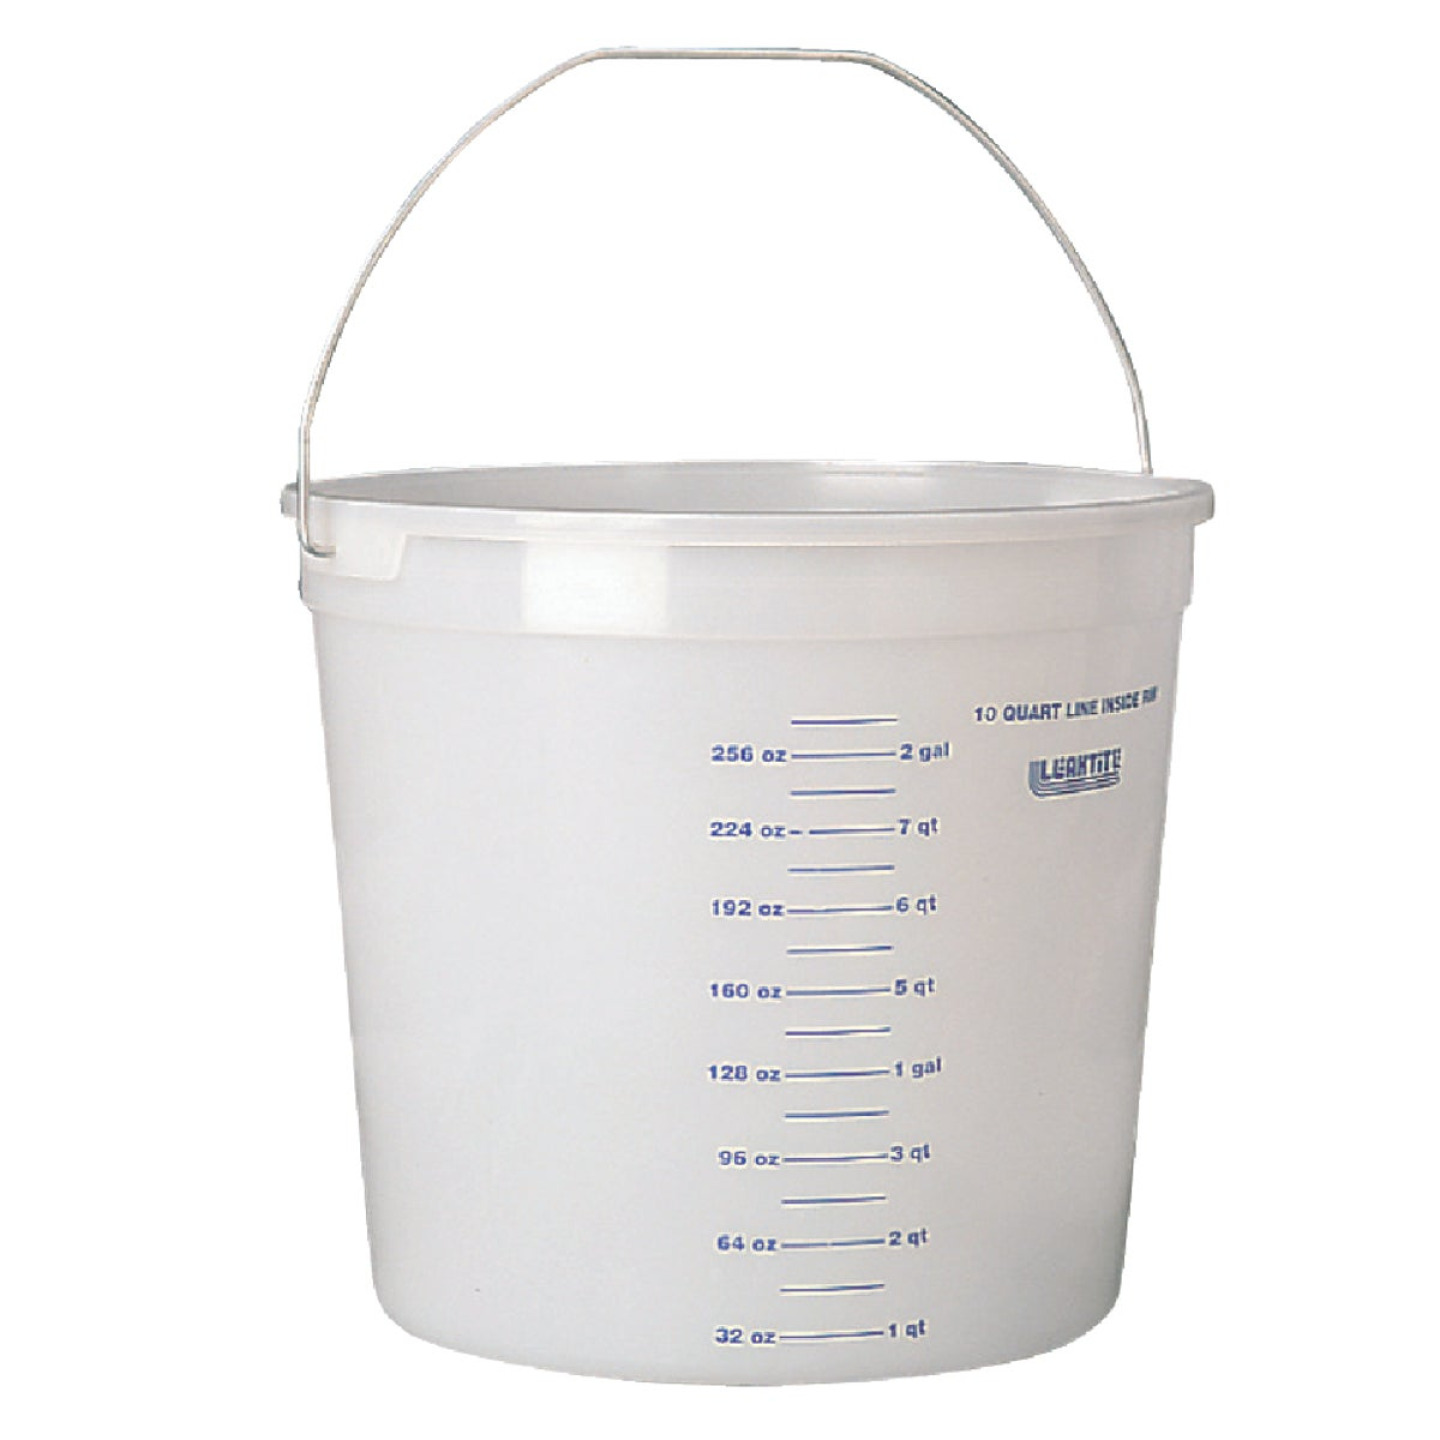 Leaktite 10 Qt. Clear Plastic Pail with Measuring Increments Image 1